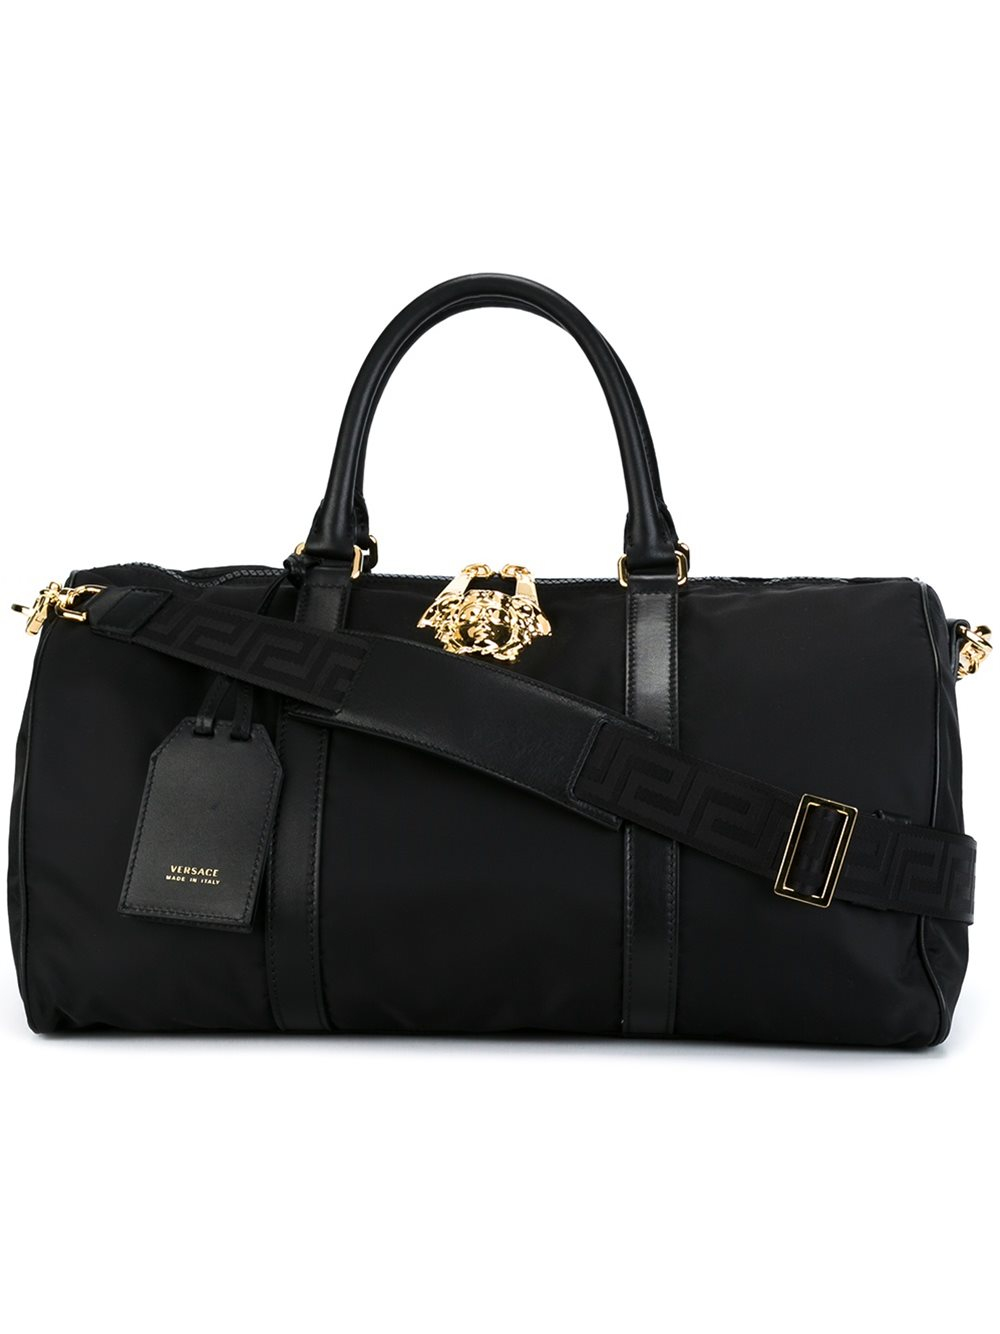 47e41f9a45 Lyst - Versace  palazzo Medusa  Duffle Bag in Black for Men